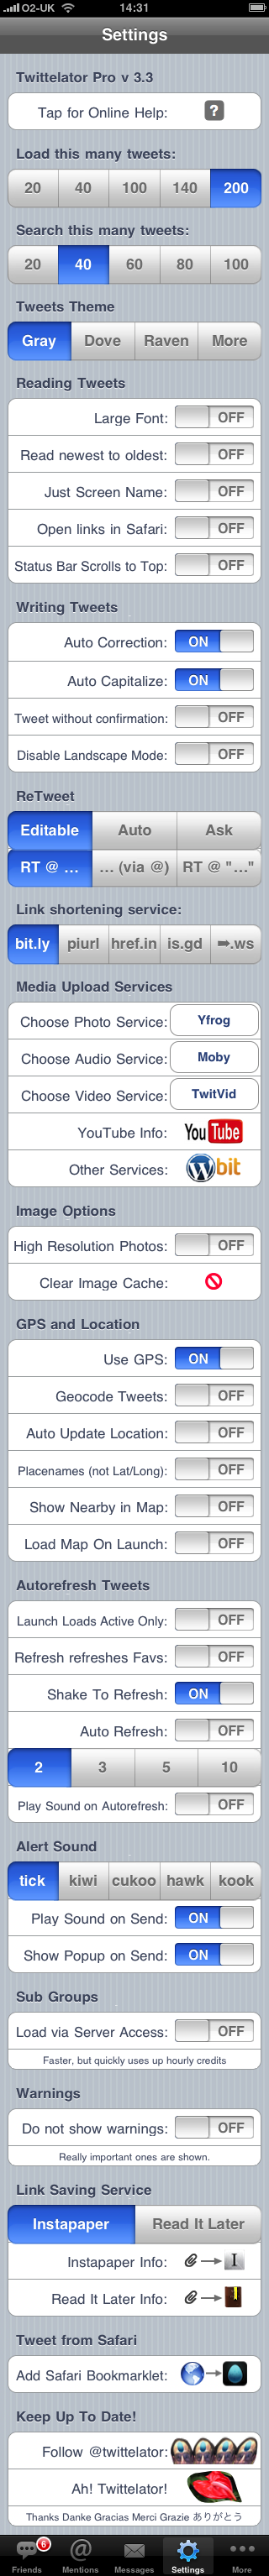 Twittelator's Settings Pane